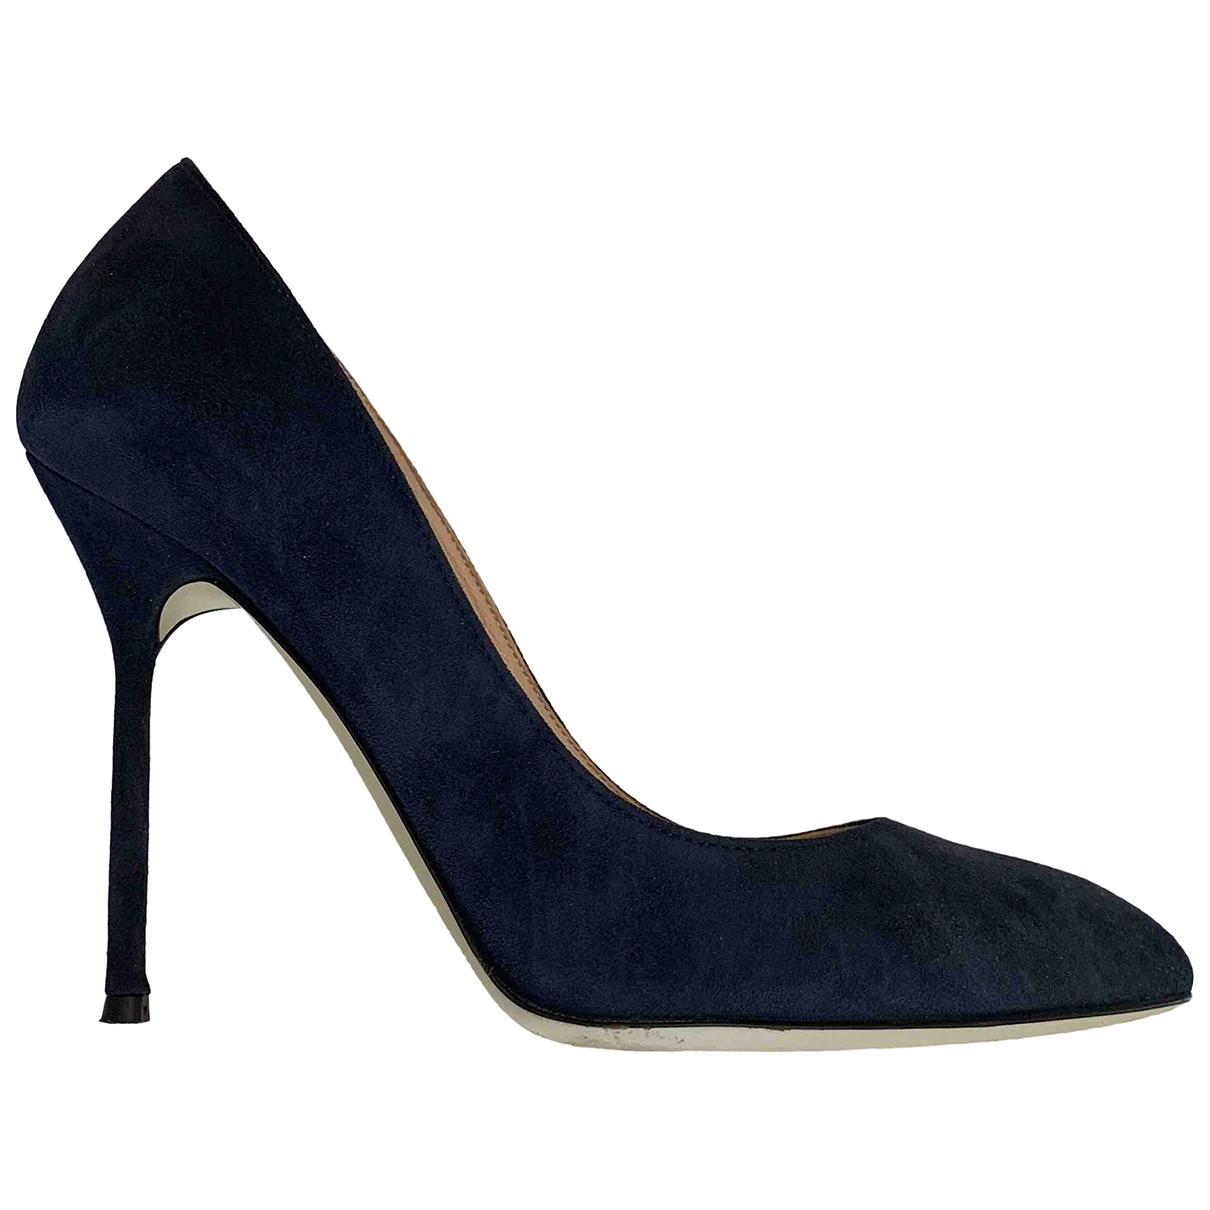 Sergio Rossi \N Pumps in  Blau Veloursleder